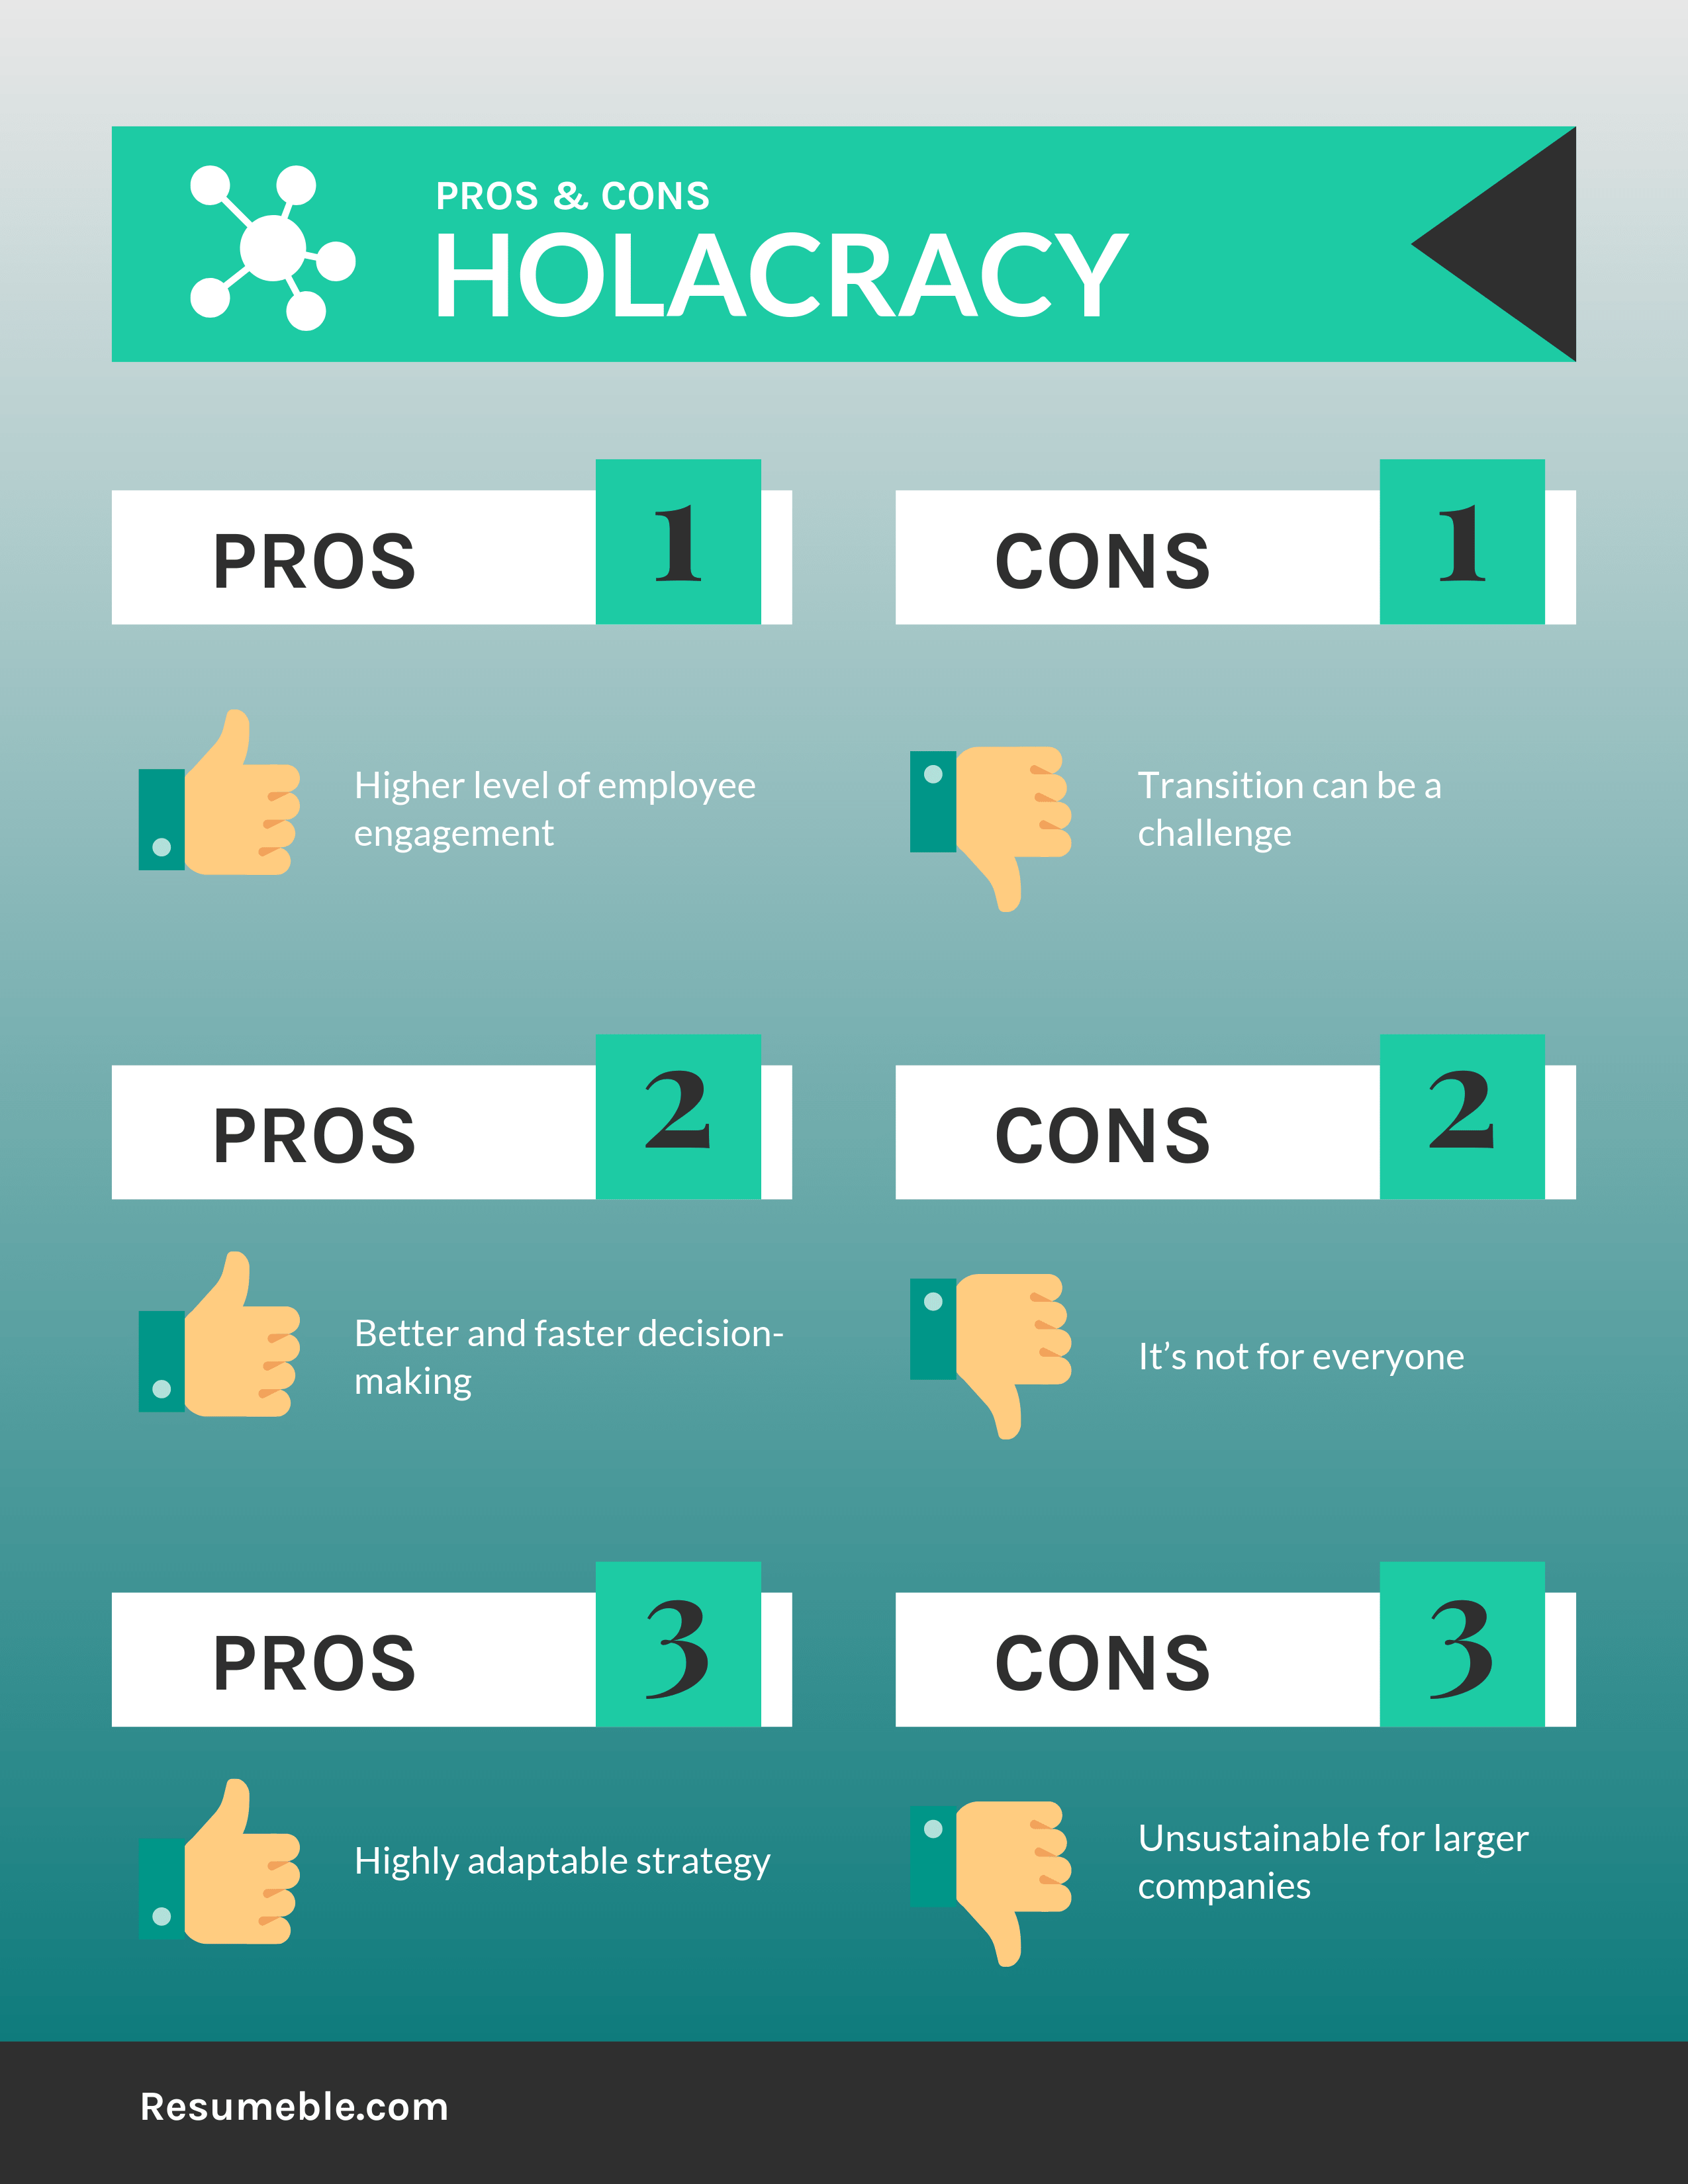 holacracy pros and cons